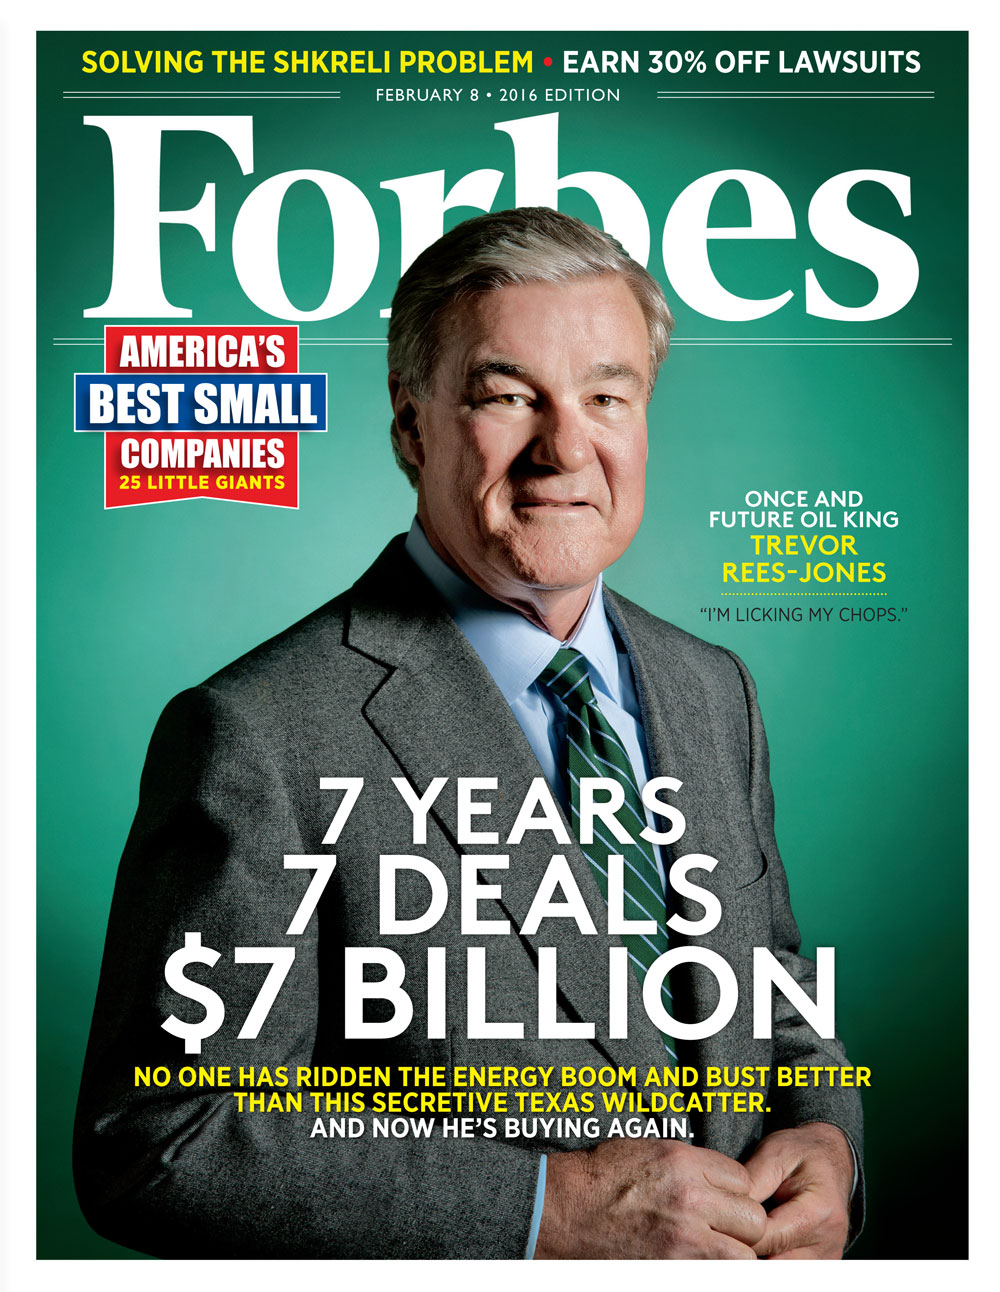 0115_forbes-cover-trevor-rees-jones-best-small-companies-020816_1000x1292